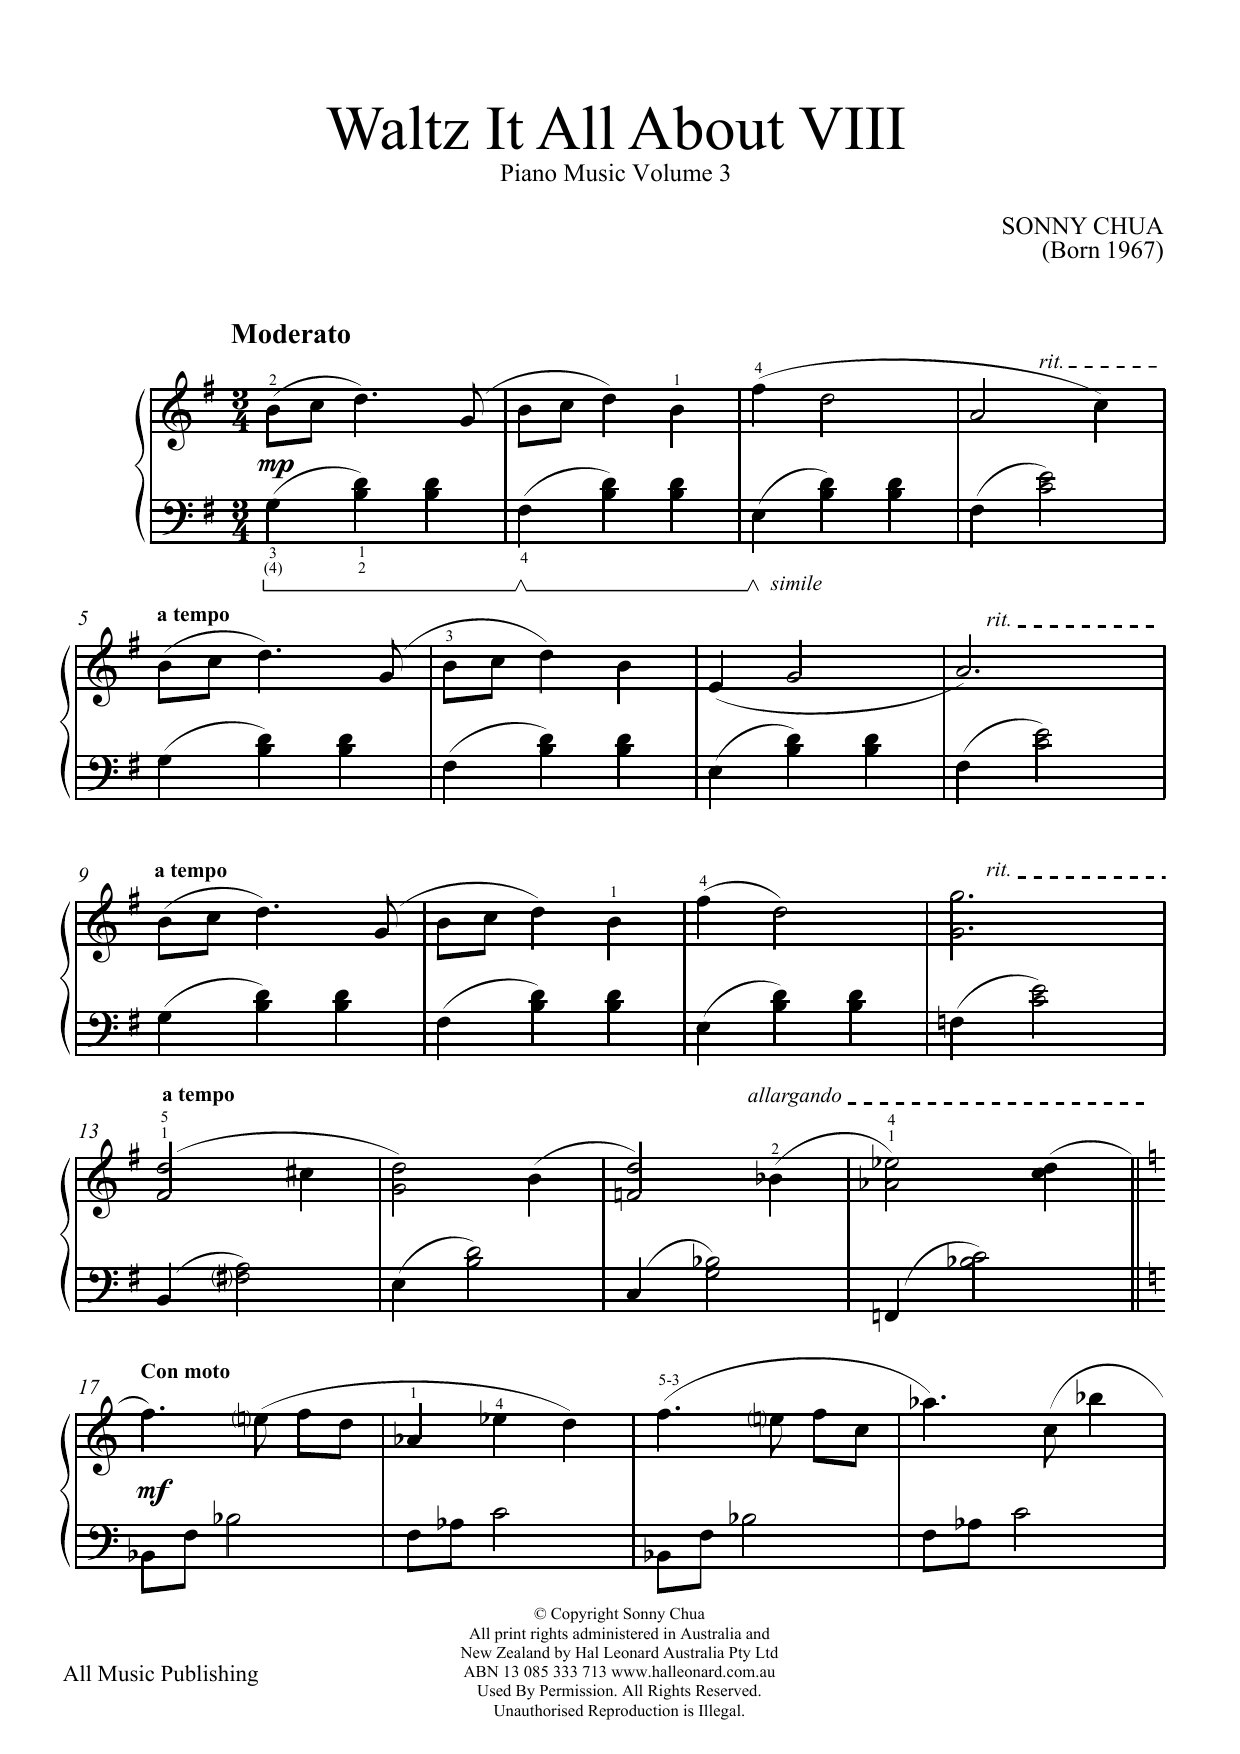 Waltz It All About Viii (From Piano Music Vol 3) Sheet Music